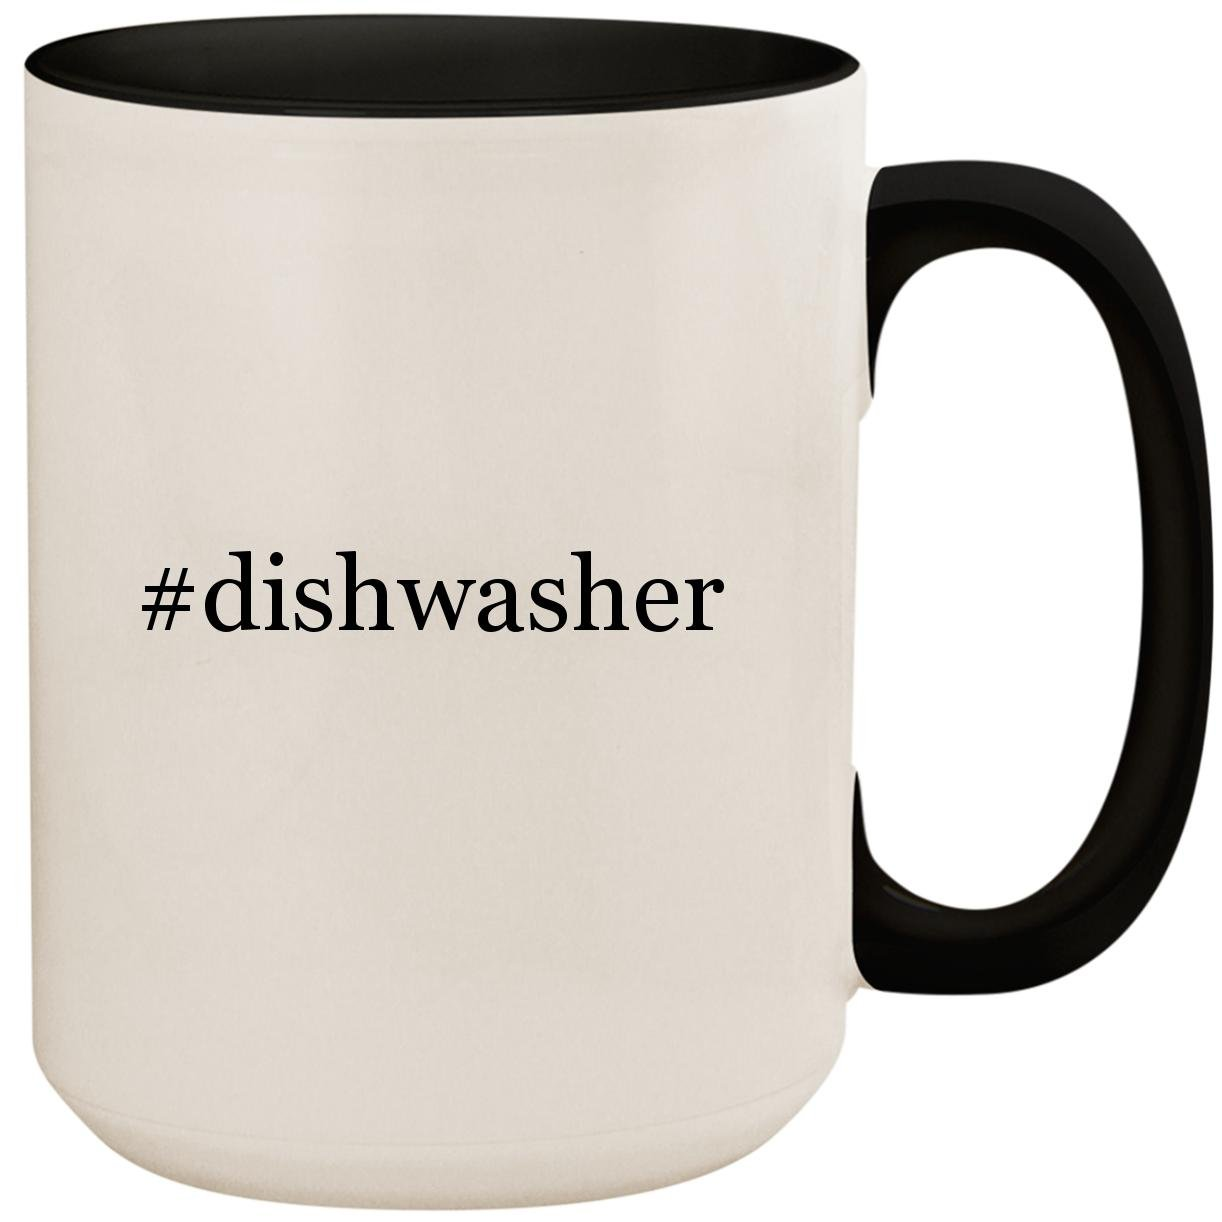 #dishwasher - 15oz Ceramic Colored Inside and Handle Coffee Mug Cup, Black